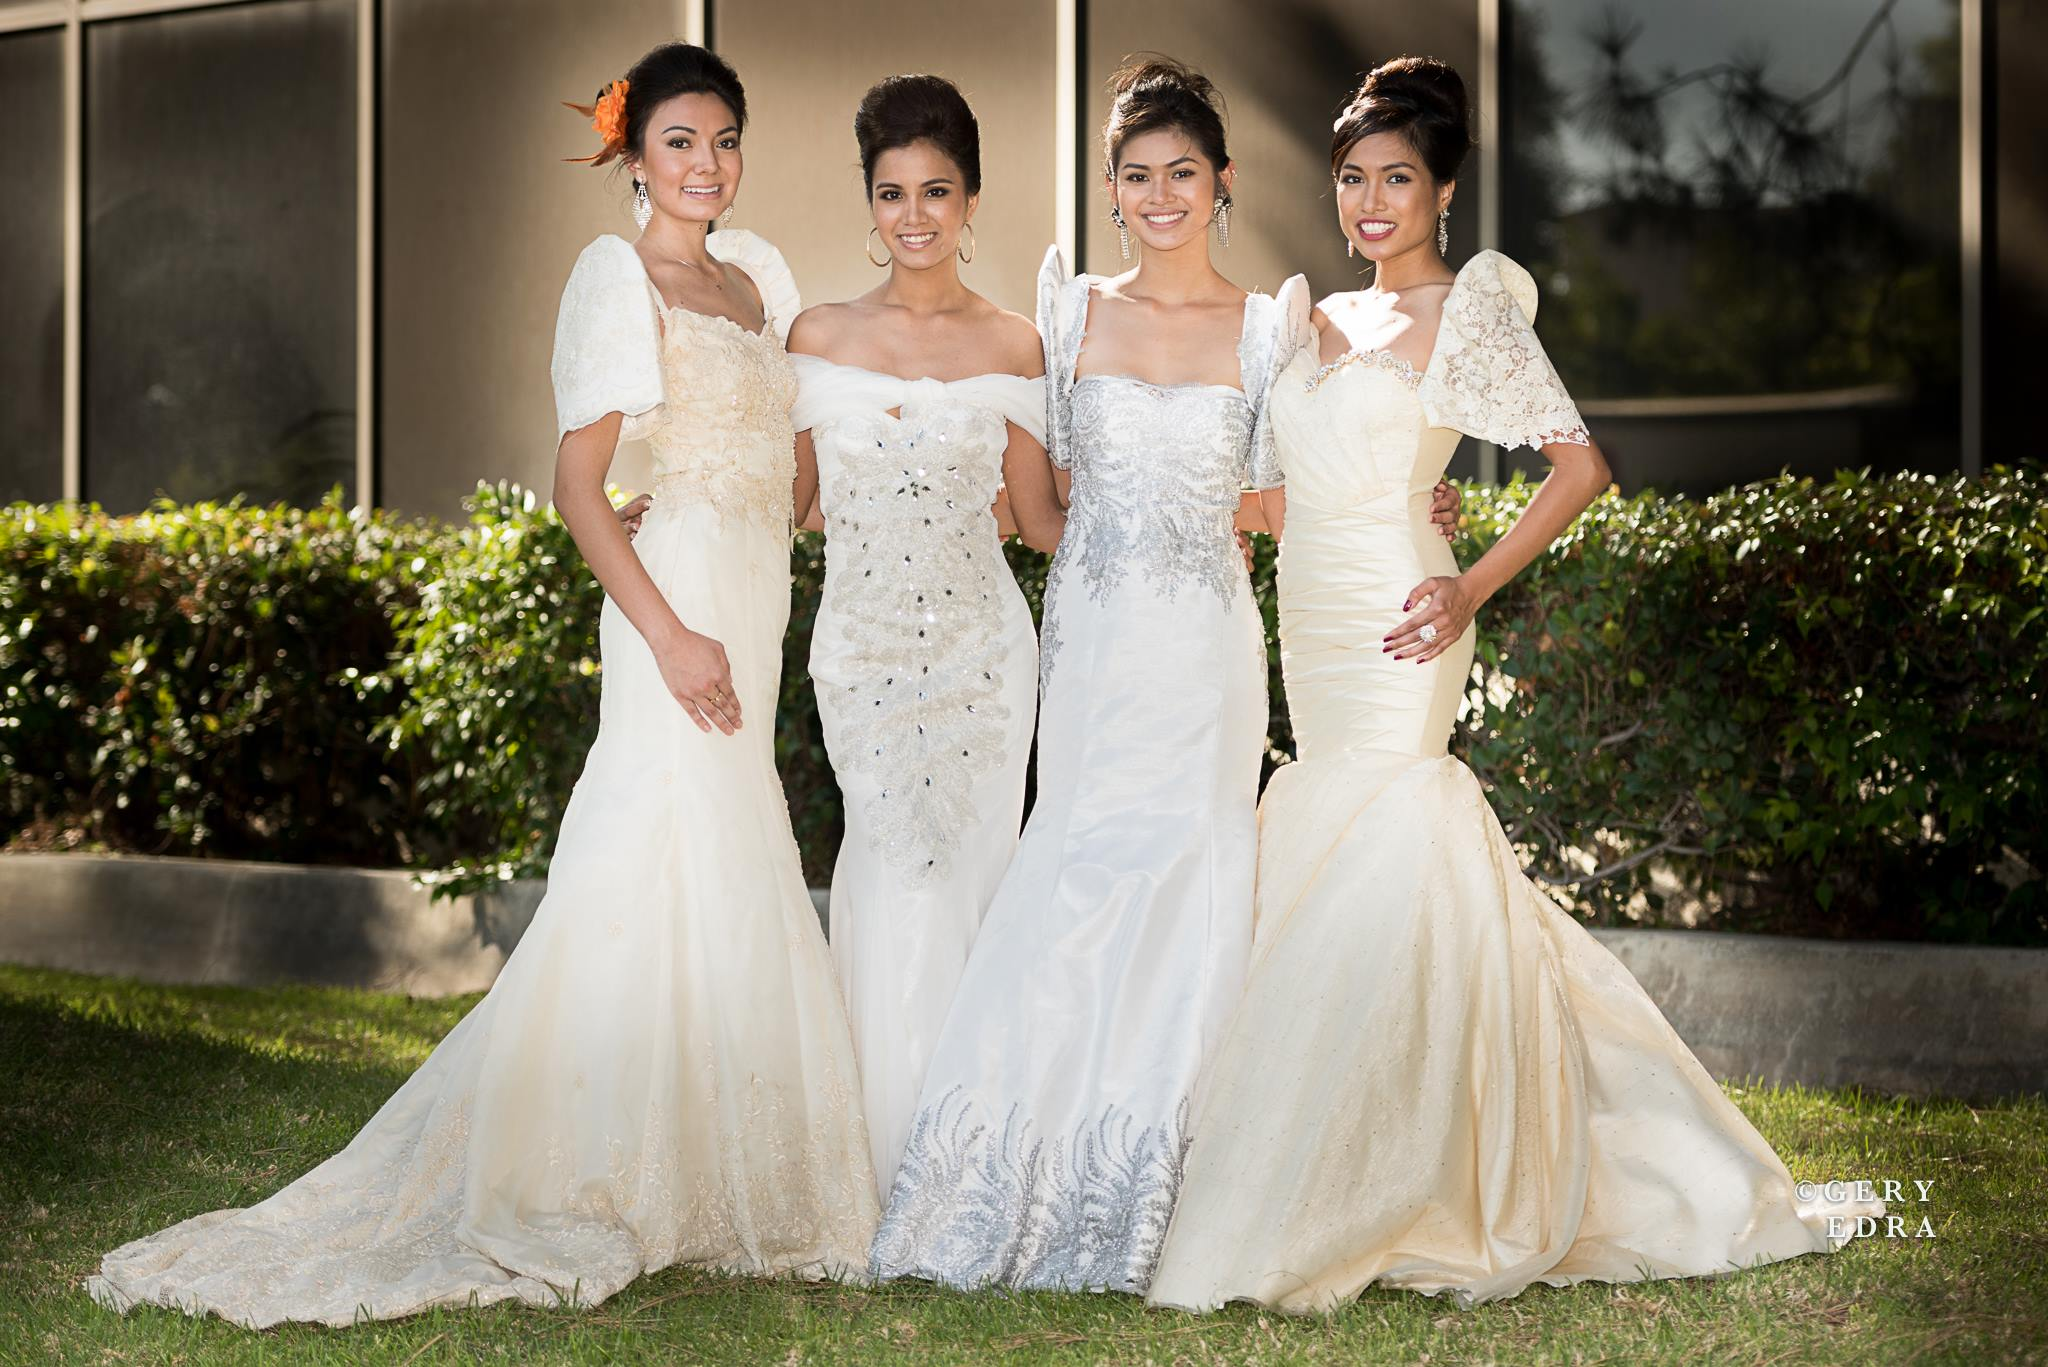 Wedding gowns images philippines fiestas